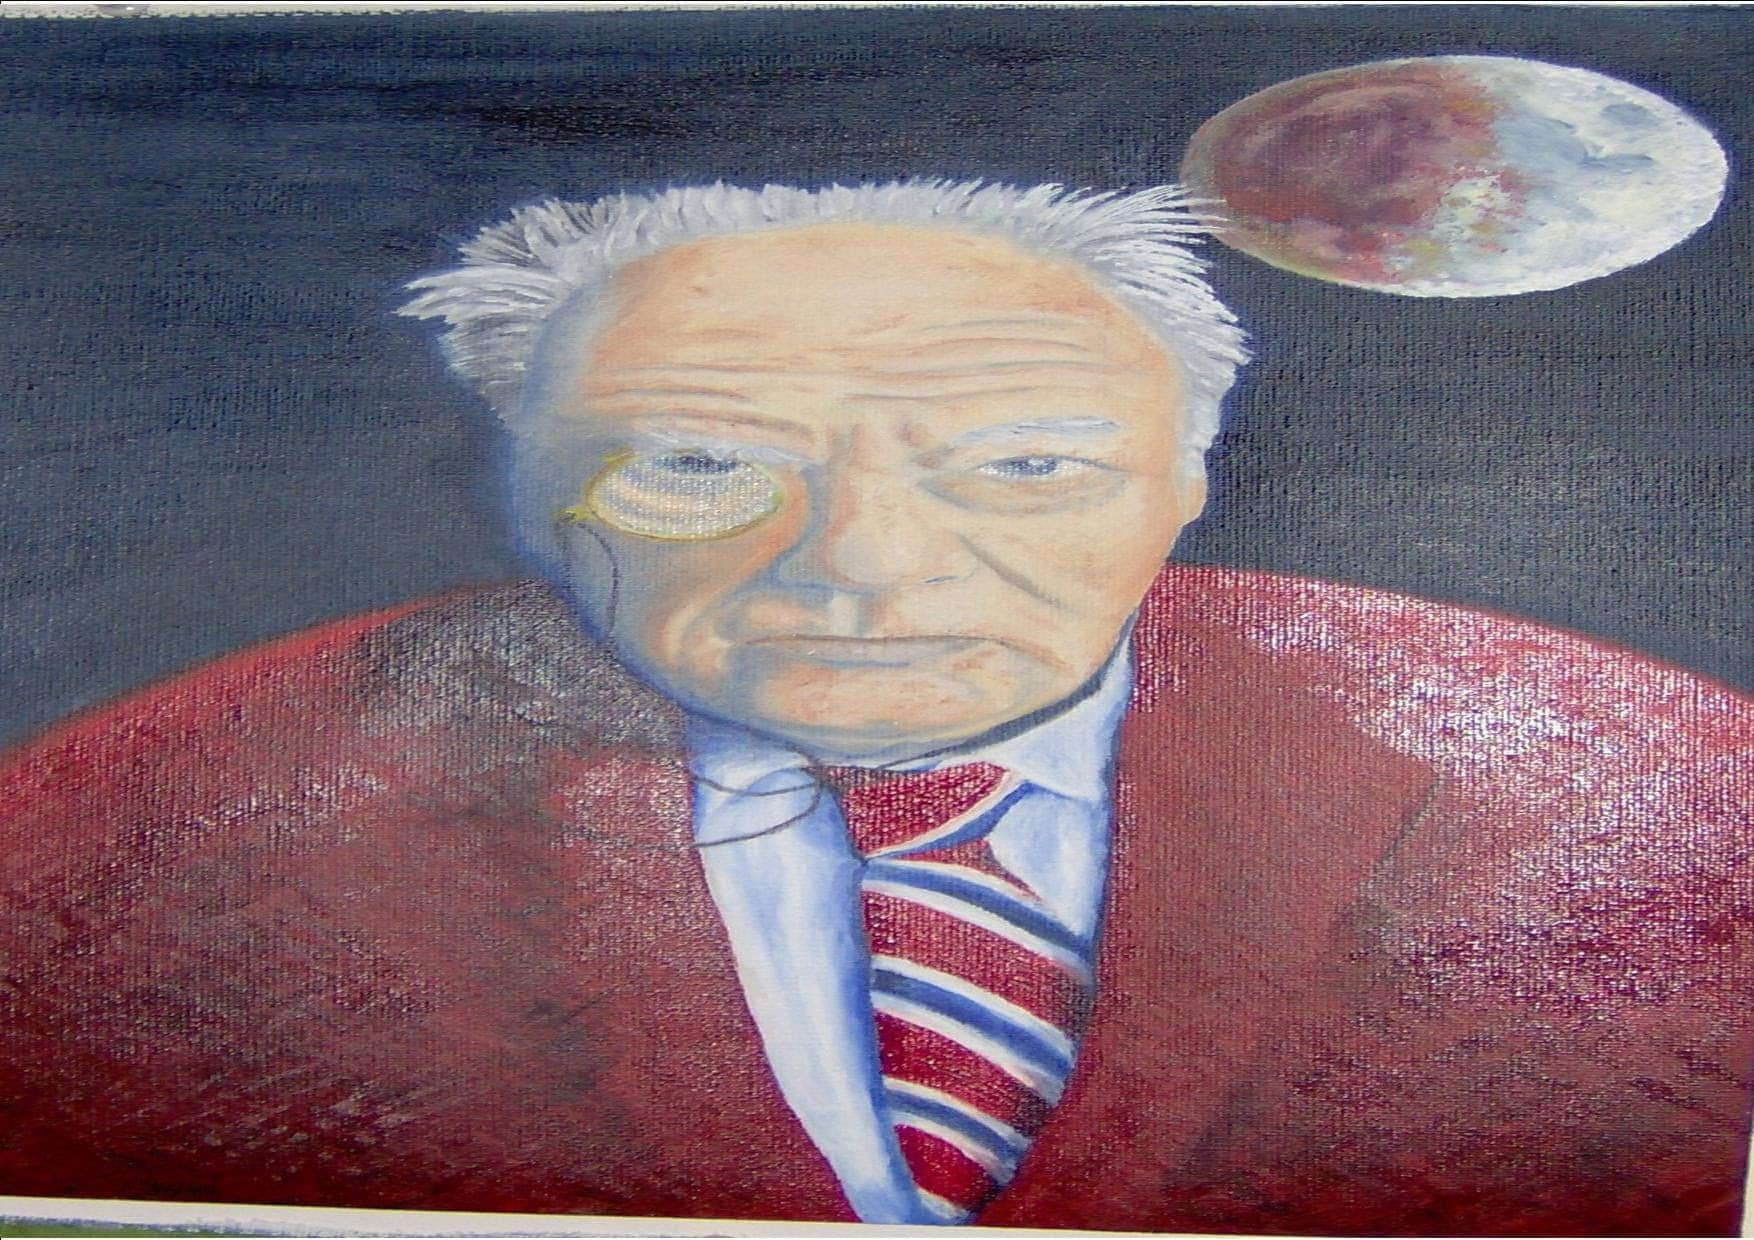 Tribute to Sir Patrick Moore who died today. 15